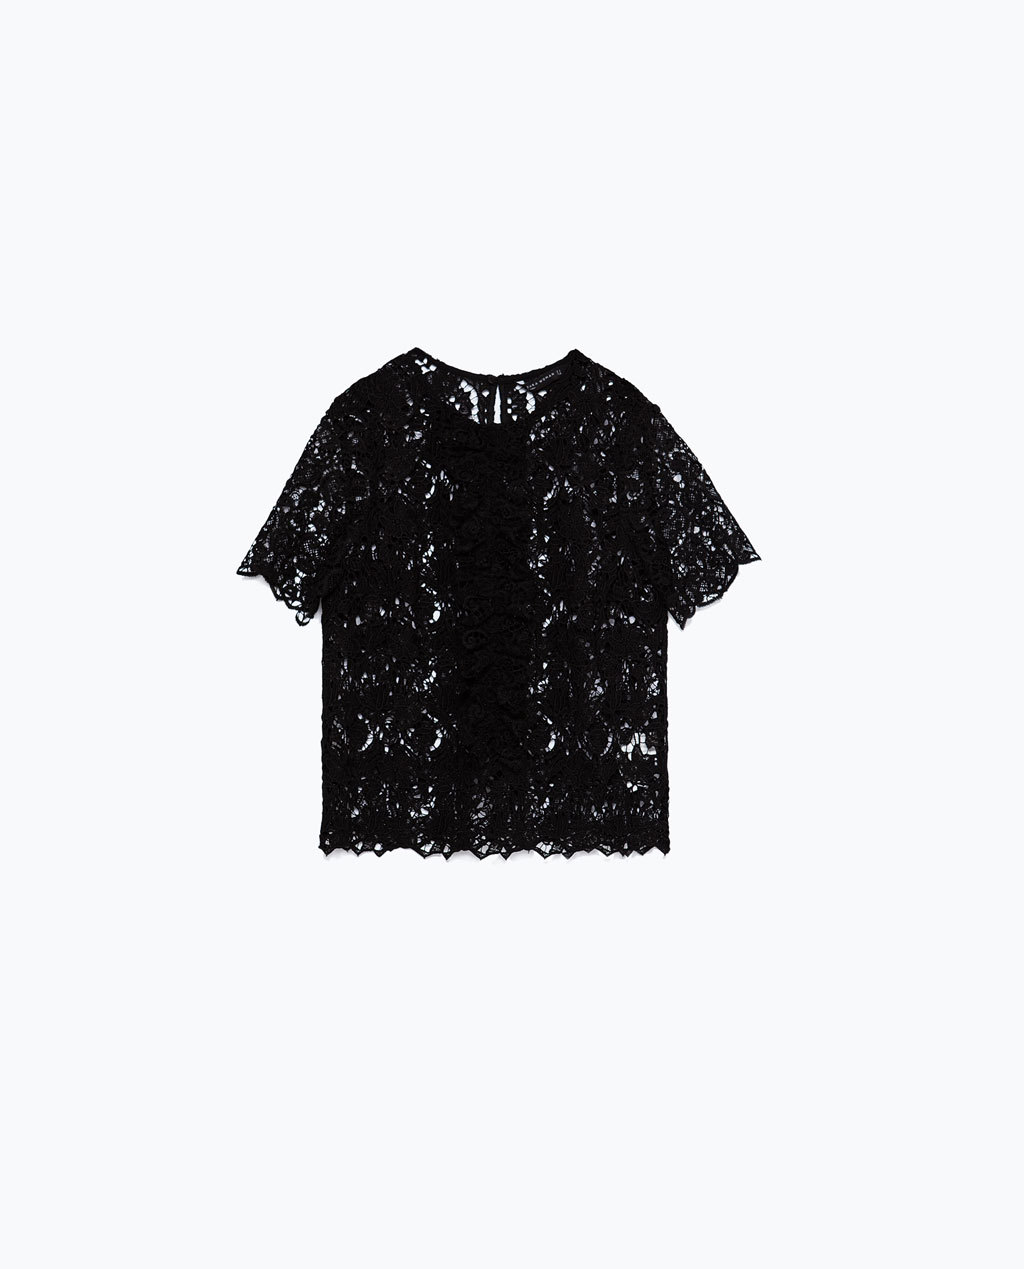 Lace Top - predominant colour: black; occasions: casual, evening; length: standard; style: top; fibres: polyester/polyamide - 100%; fit: straight cut; neckline: crew; sleeve length: short sleeve; sleeve style: standard; texture group: lace; pattern type: fabric; pattern size: standard; pattern: patterned/print; season: a/w 2015; trends: romantic goth; wardrobe: highlight